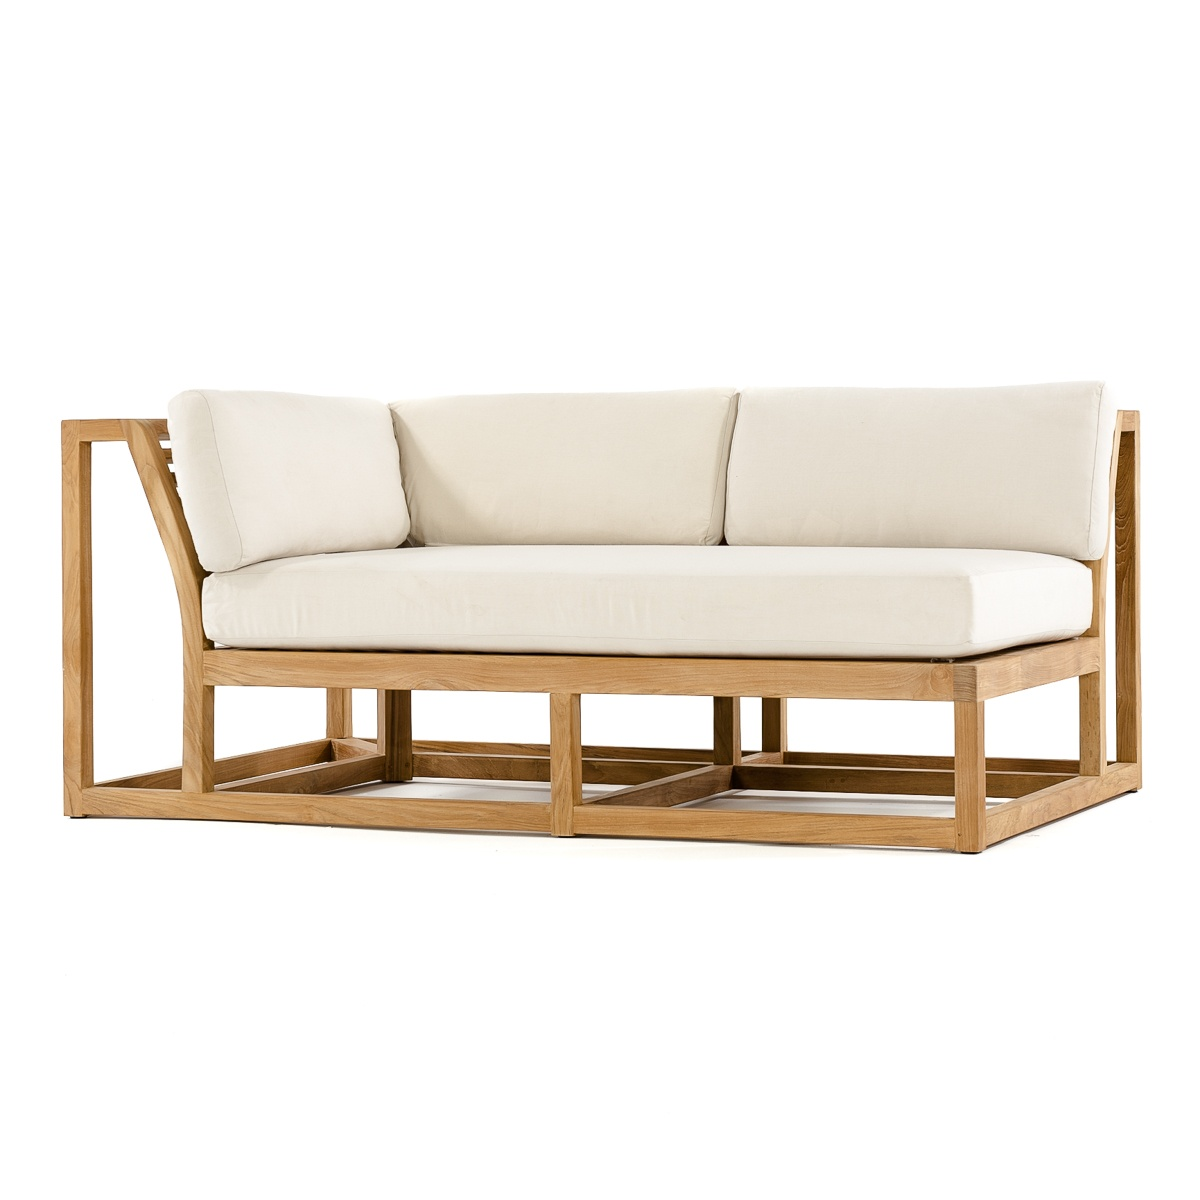 Maya Teak Outdoor Sectional Sofa Westminster Teak Outdoor Furniture